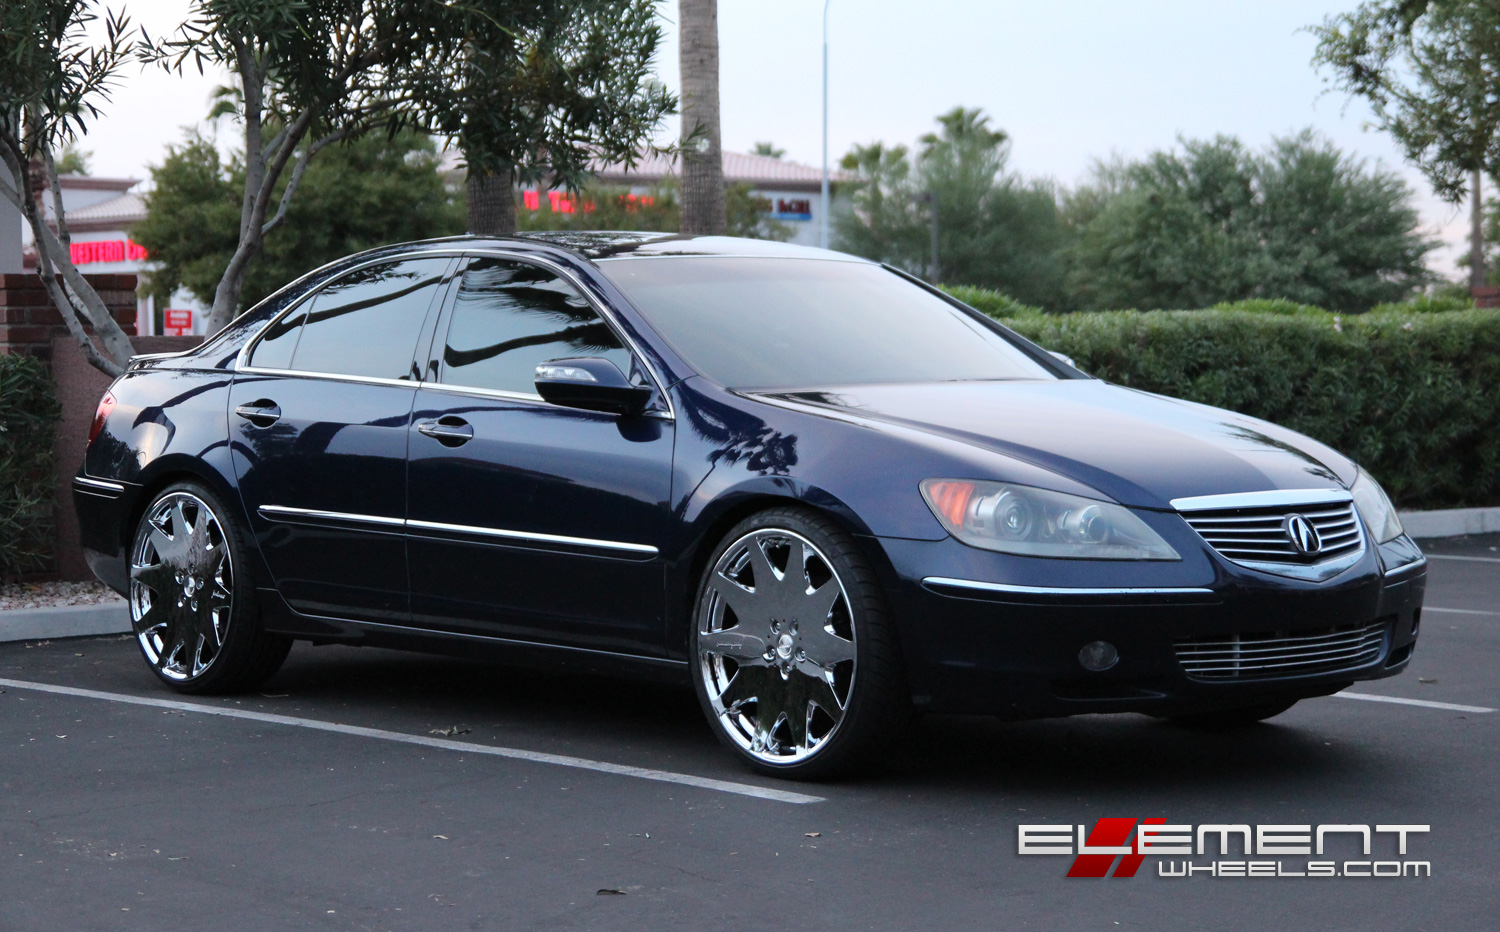 Acura Rl Wheels Custom Rim And Tire Packages